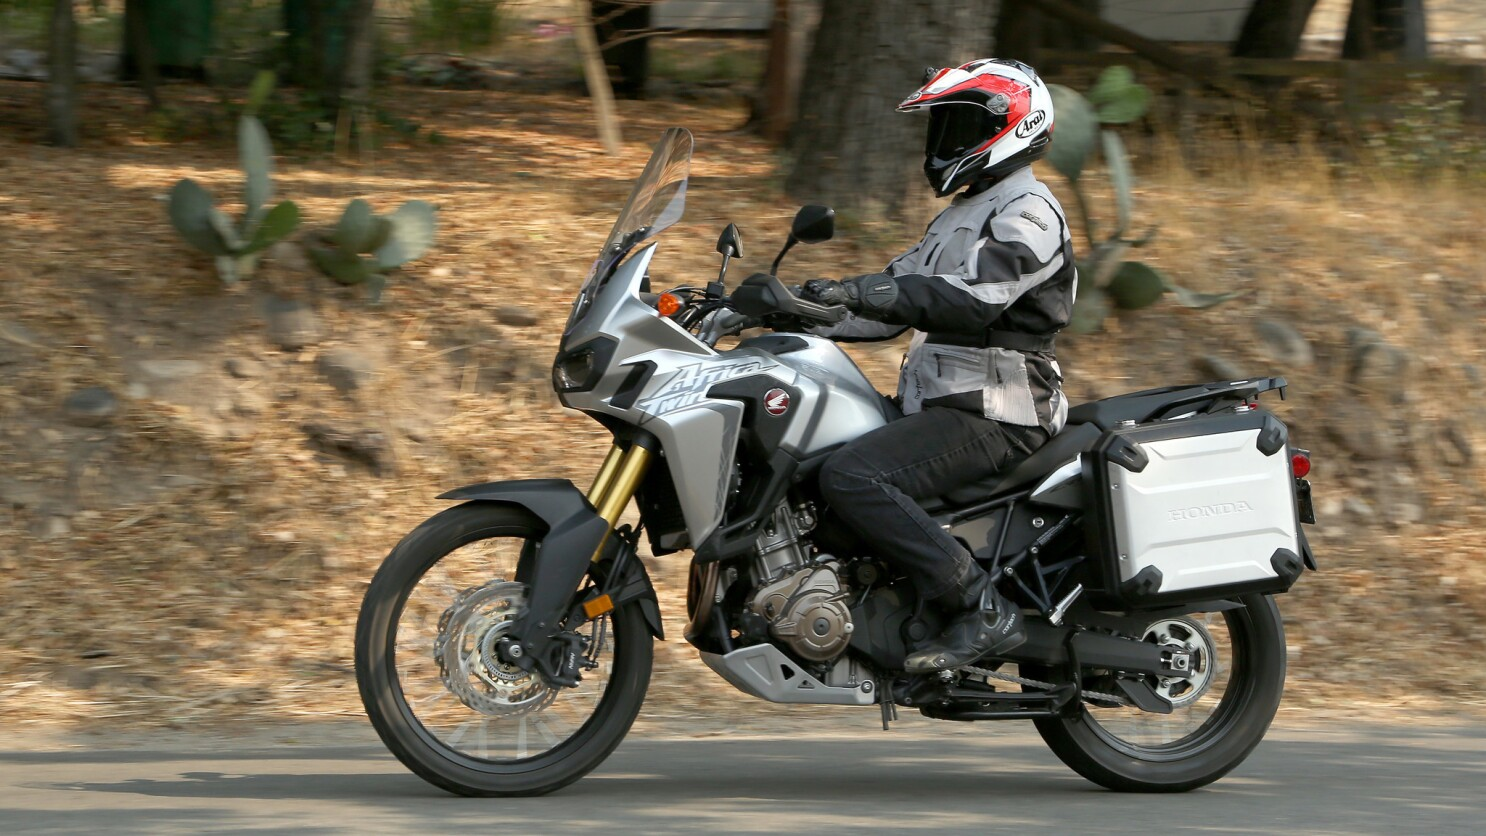 2016 Africa Twin Finally A New Adv Bike From Honda Los Angeles Times